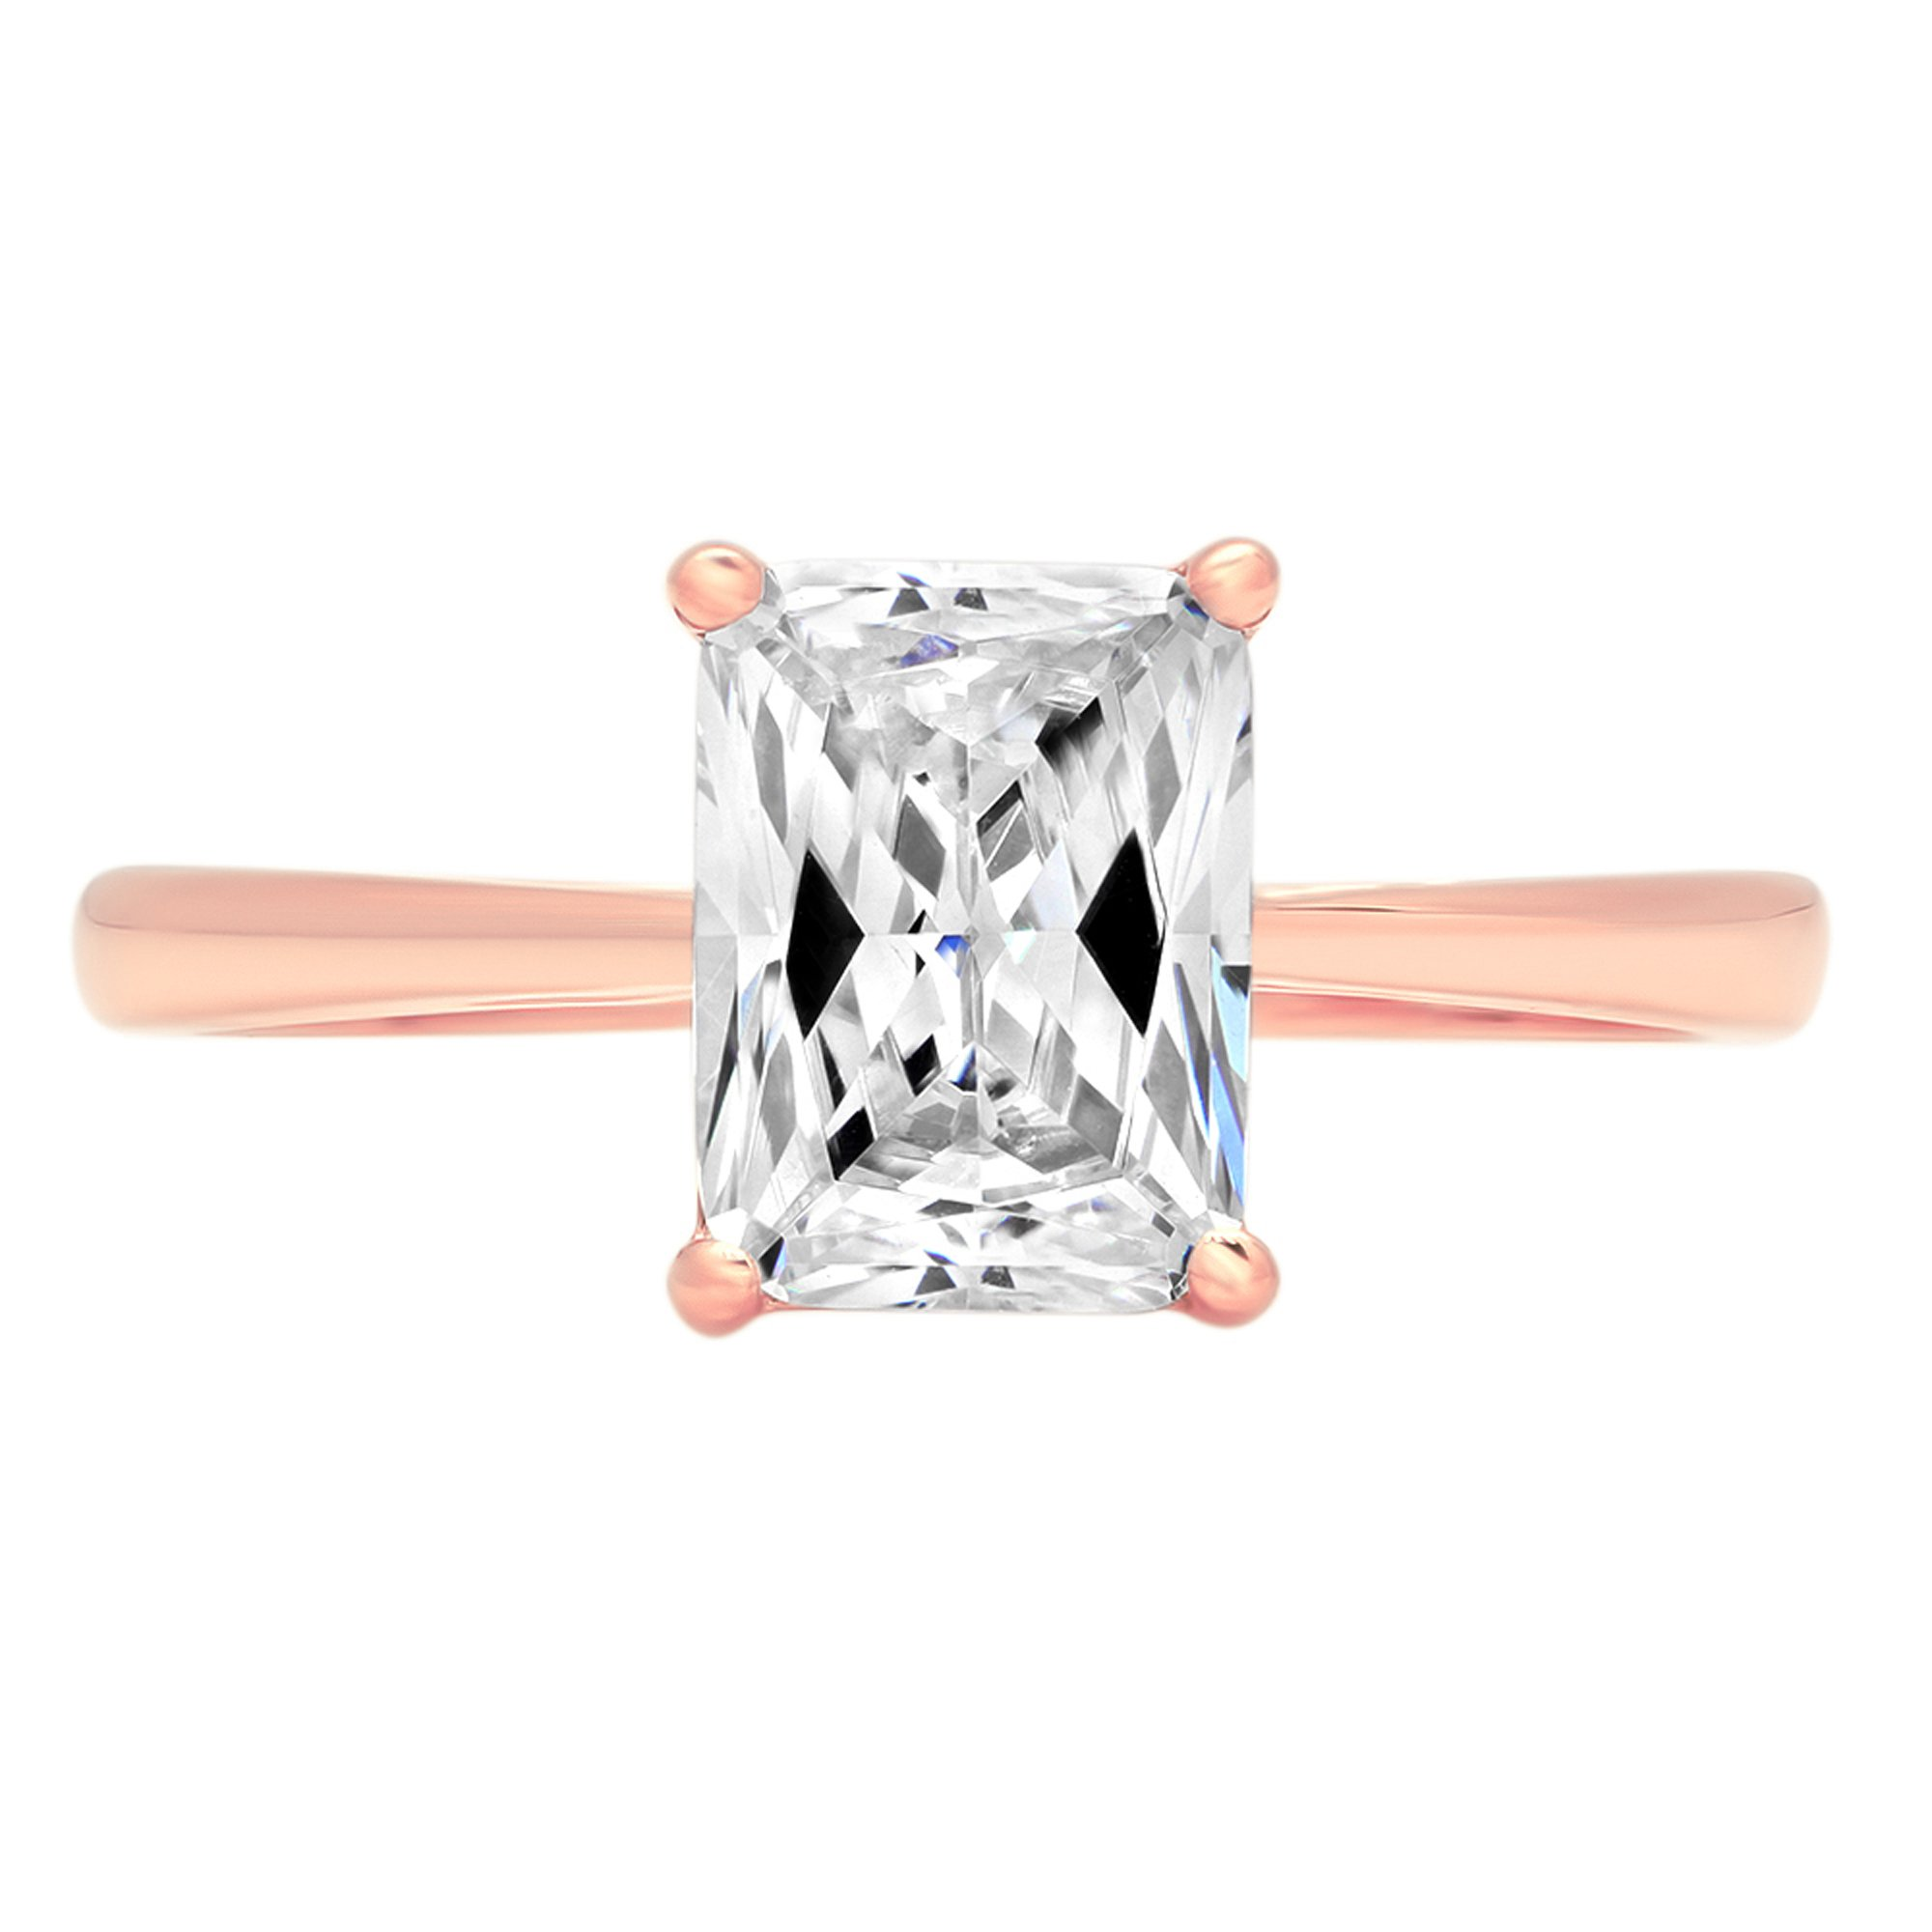 1.9ct Brilliant Emerald Cut Designer Solitaire Promise Anniversary Statement Engagement Wedding Bridal Promise Ring For Women Solid 14k Rose Gold, 5.5